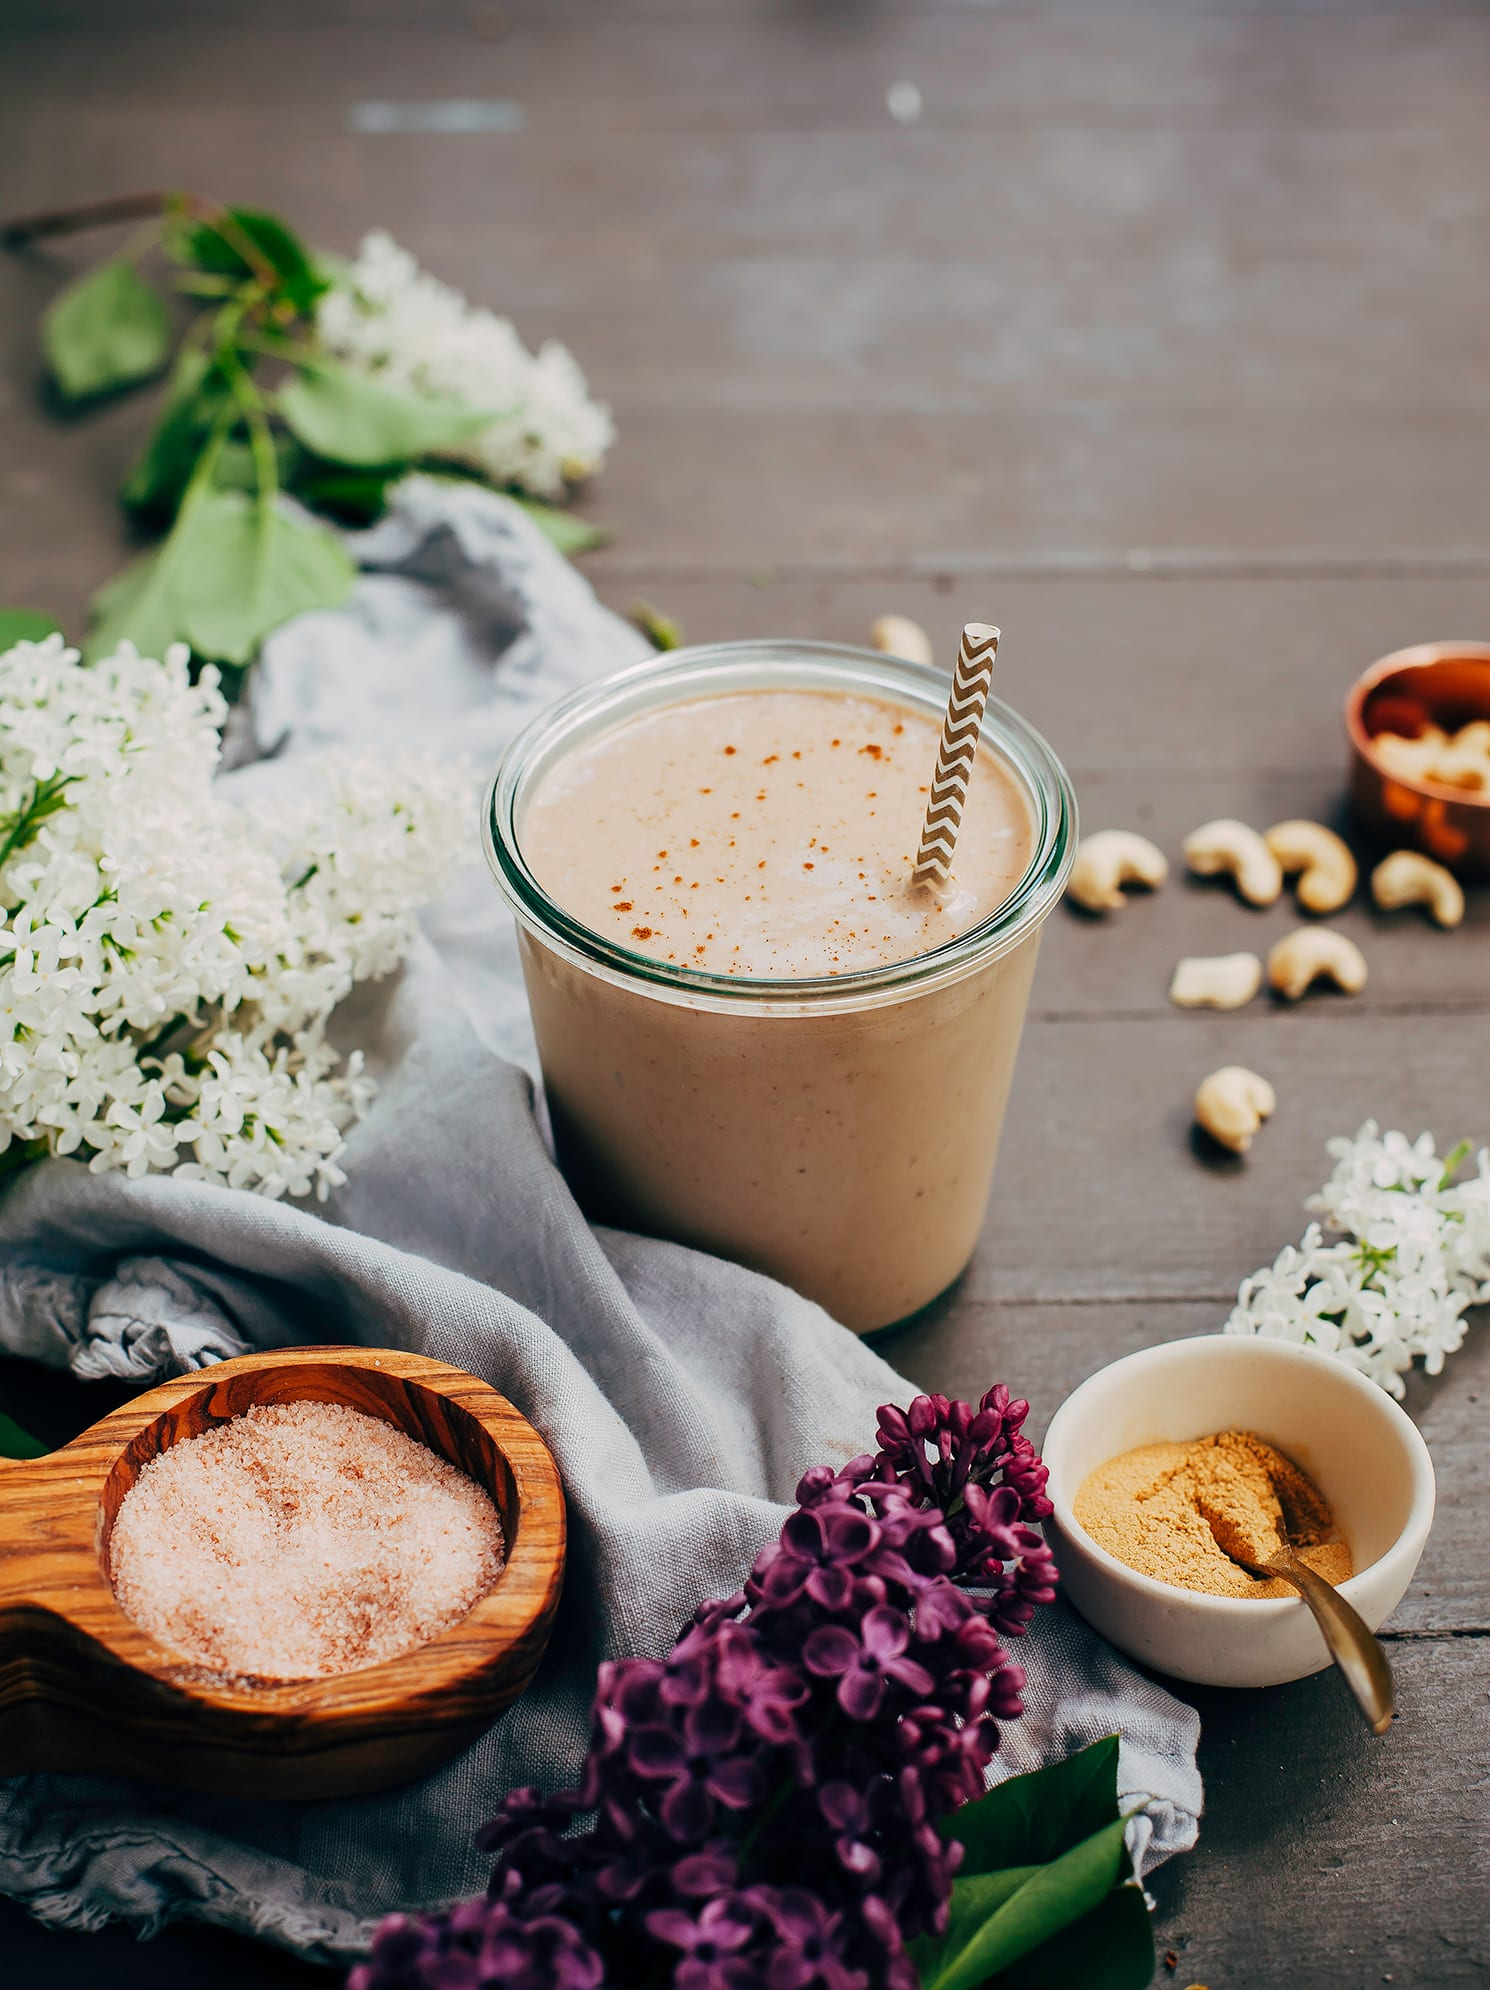 A head on shot of a maca caramel frap with some lilac flowers, a pinch bowl of salt, and raw cashews nearby.